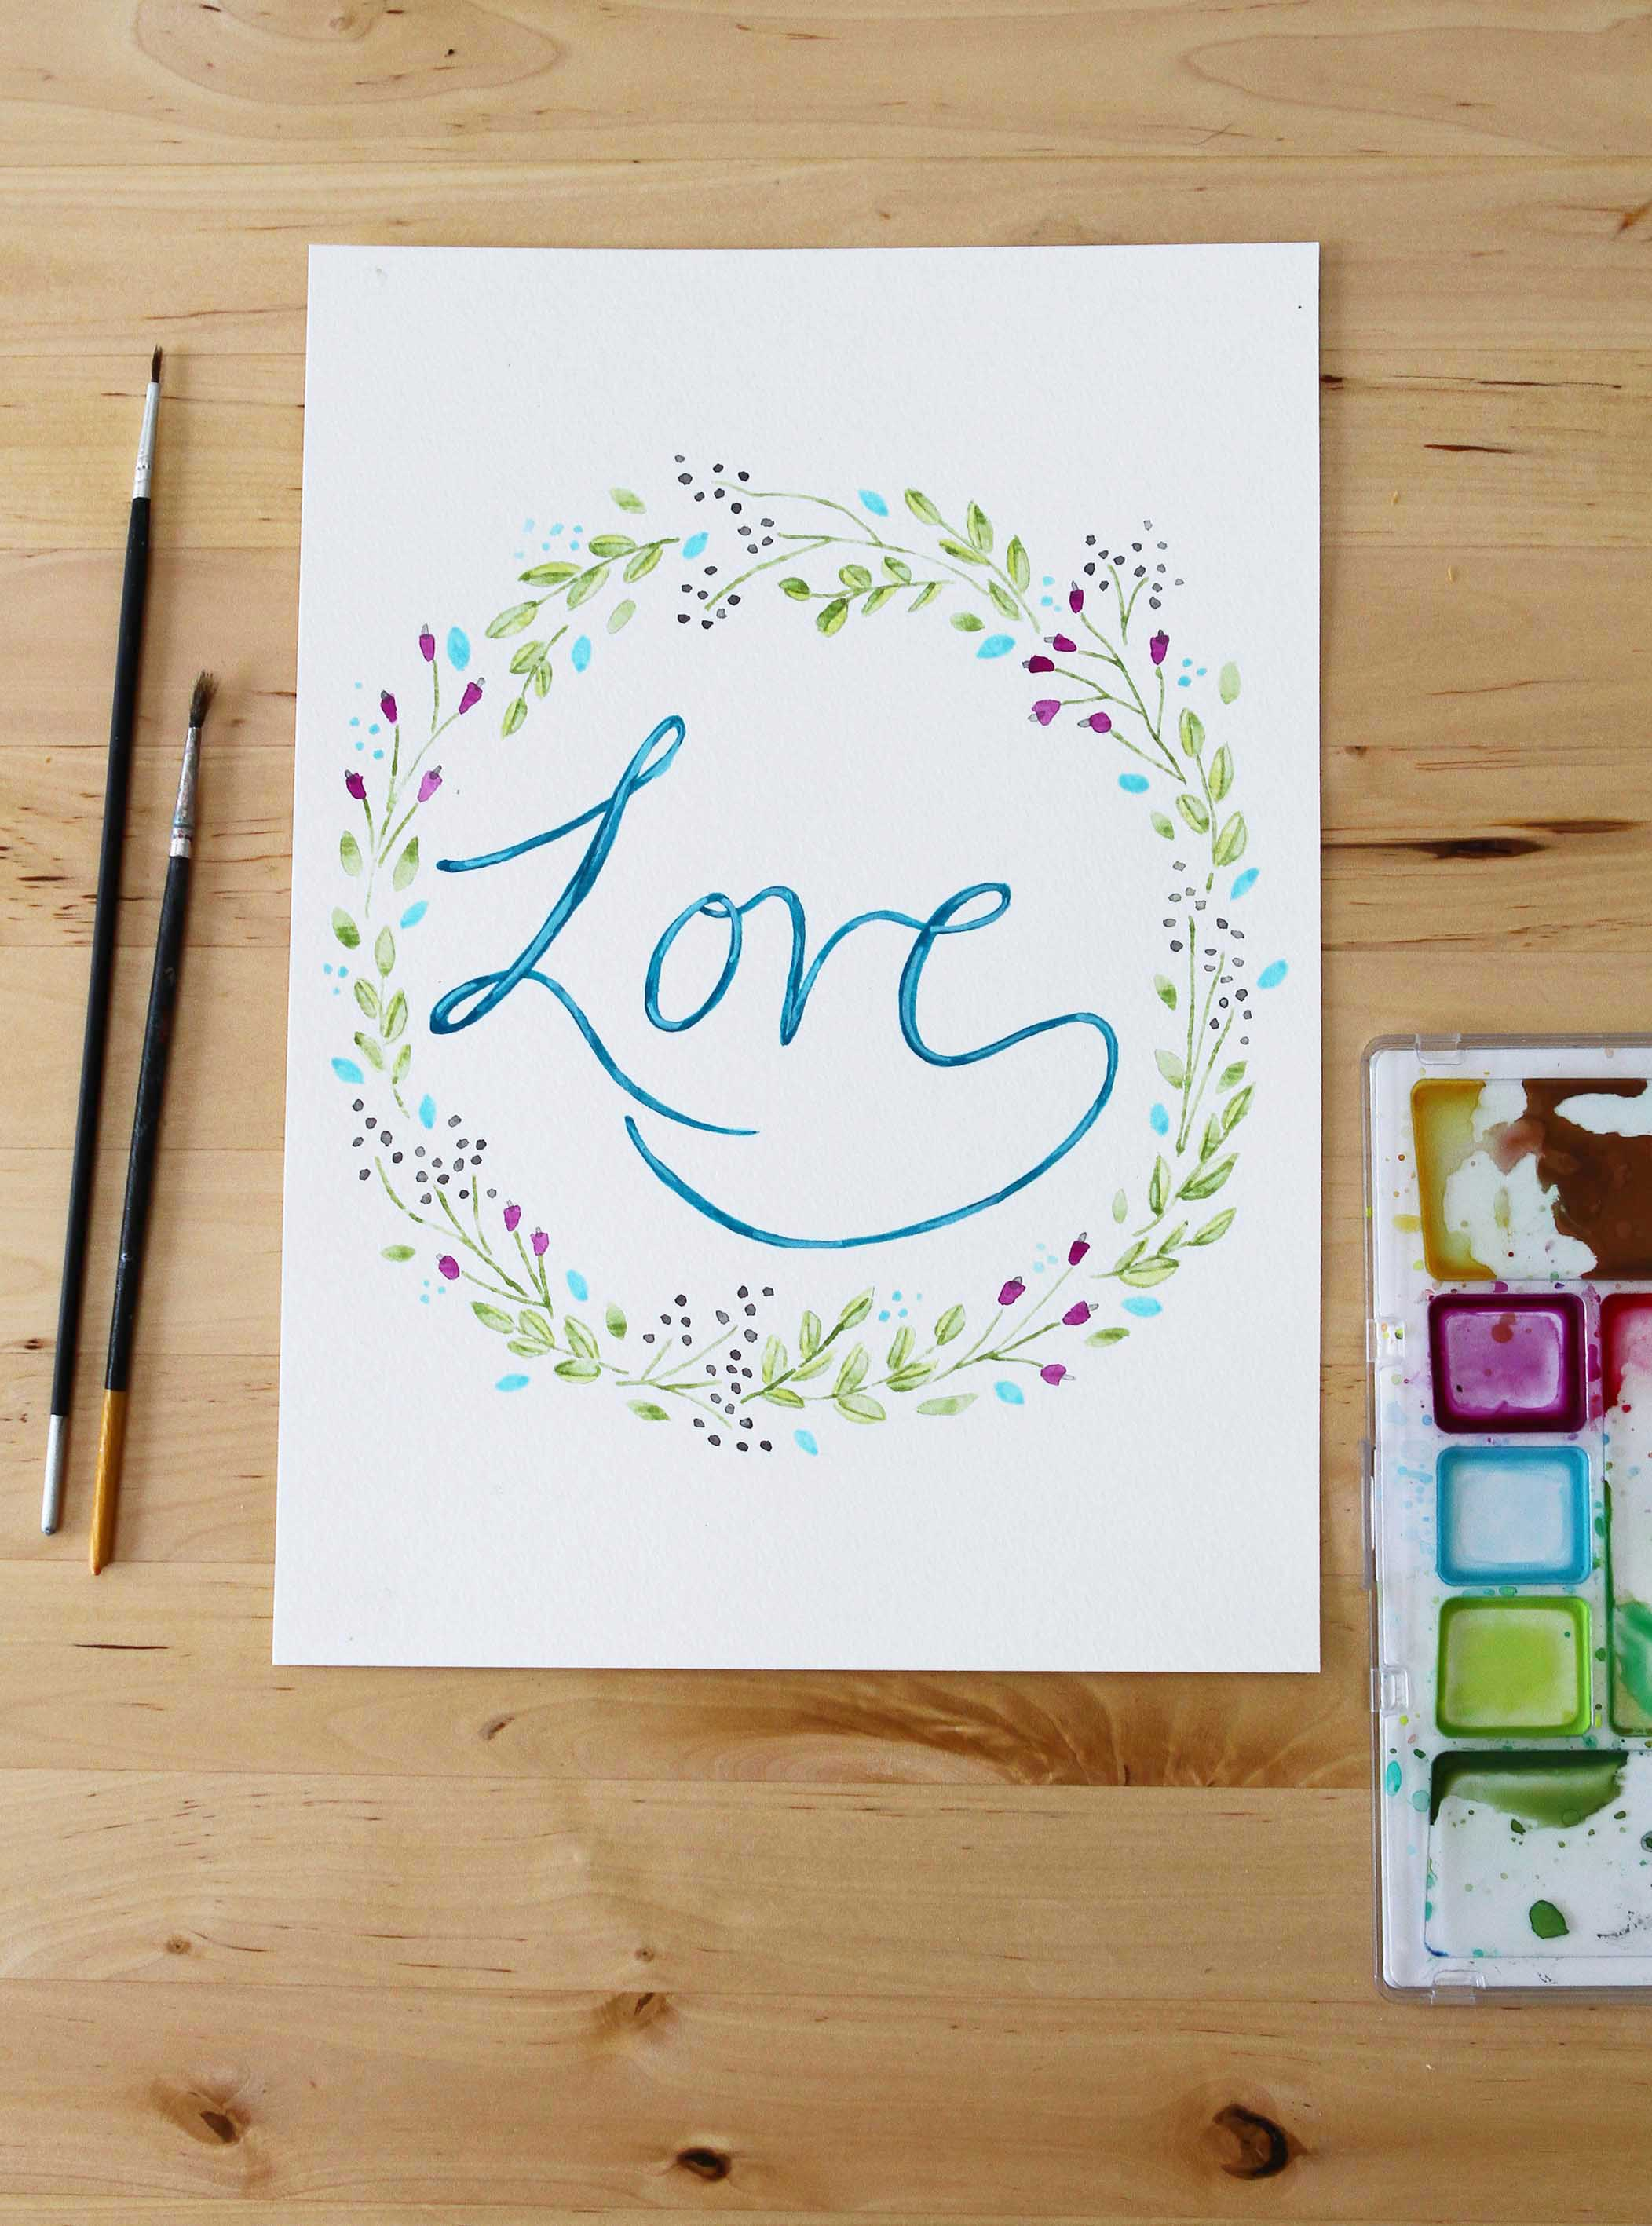 love wedding artwork painting writing typography floral flowers wreath decoration